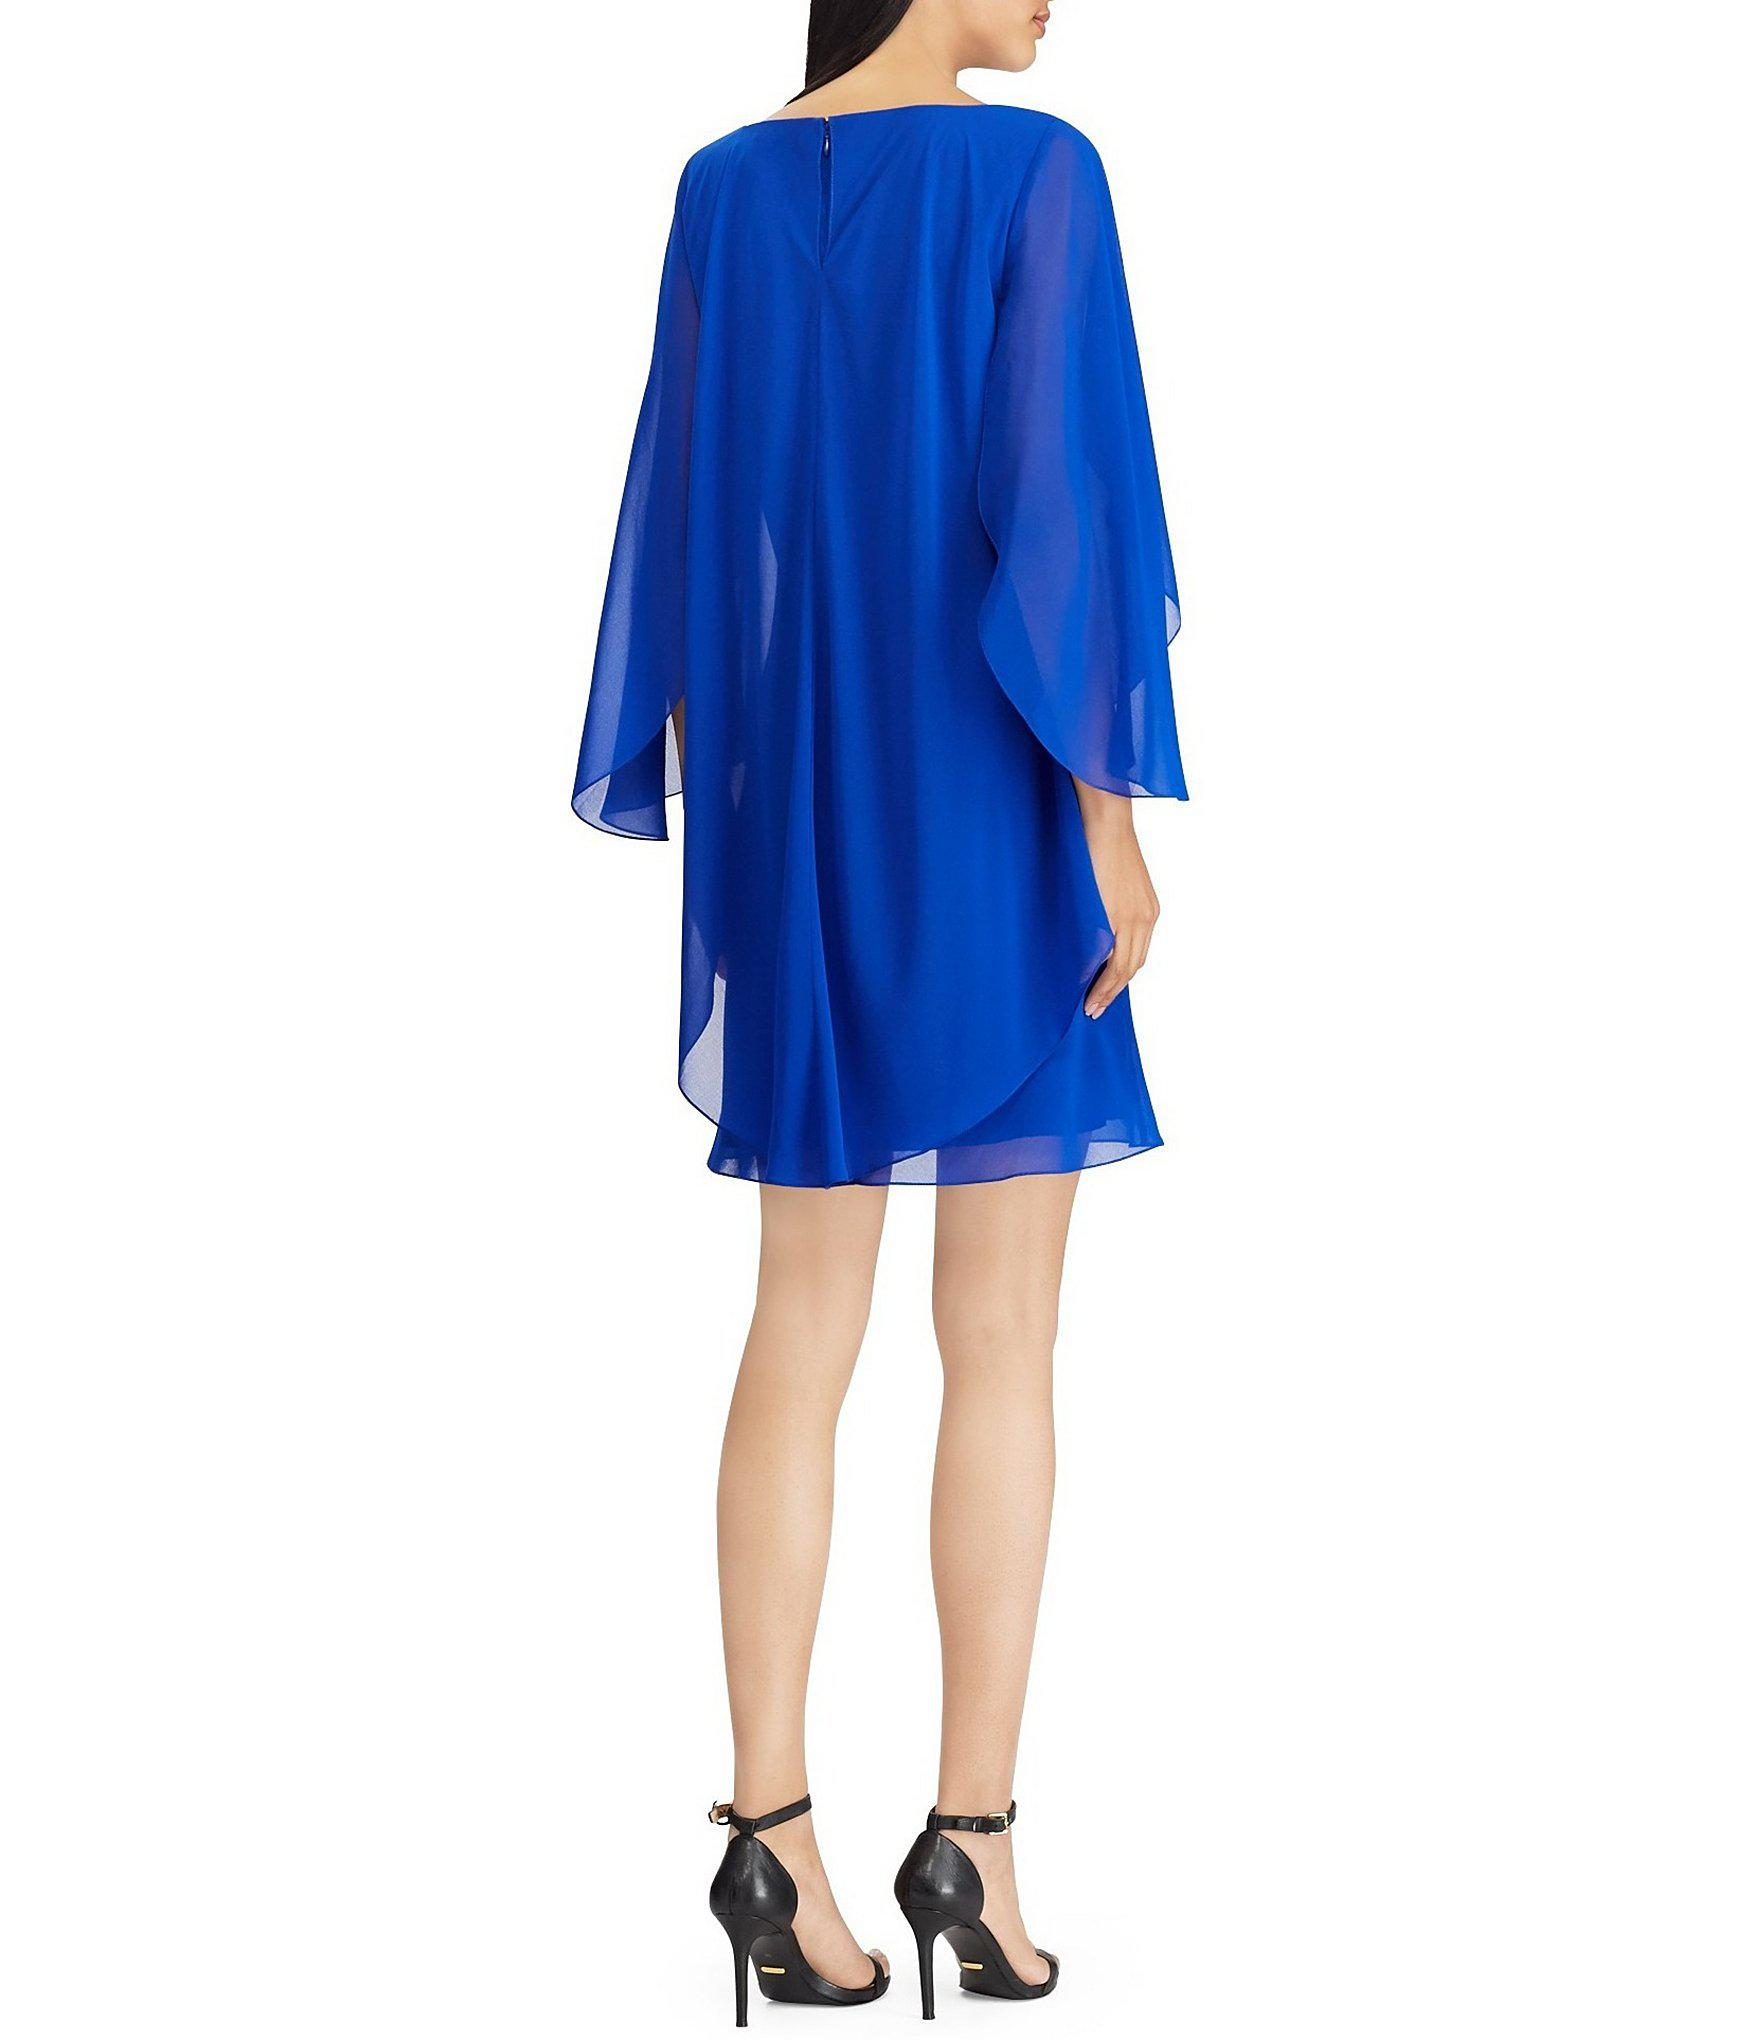 1e3e9ceb7759 Lauren by Ralph Lauren - Blue Cape Overlay Chiffon Popover Dress - Lyst.  View fullscreen